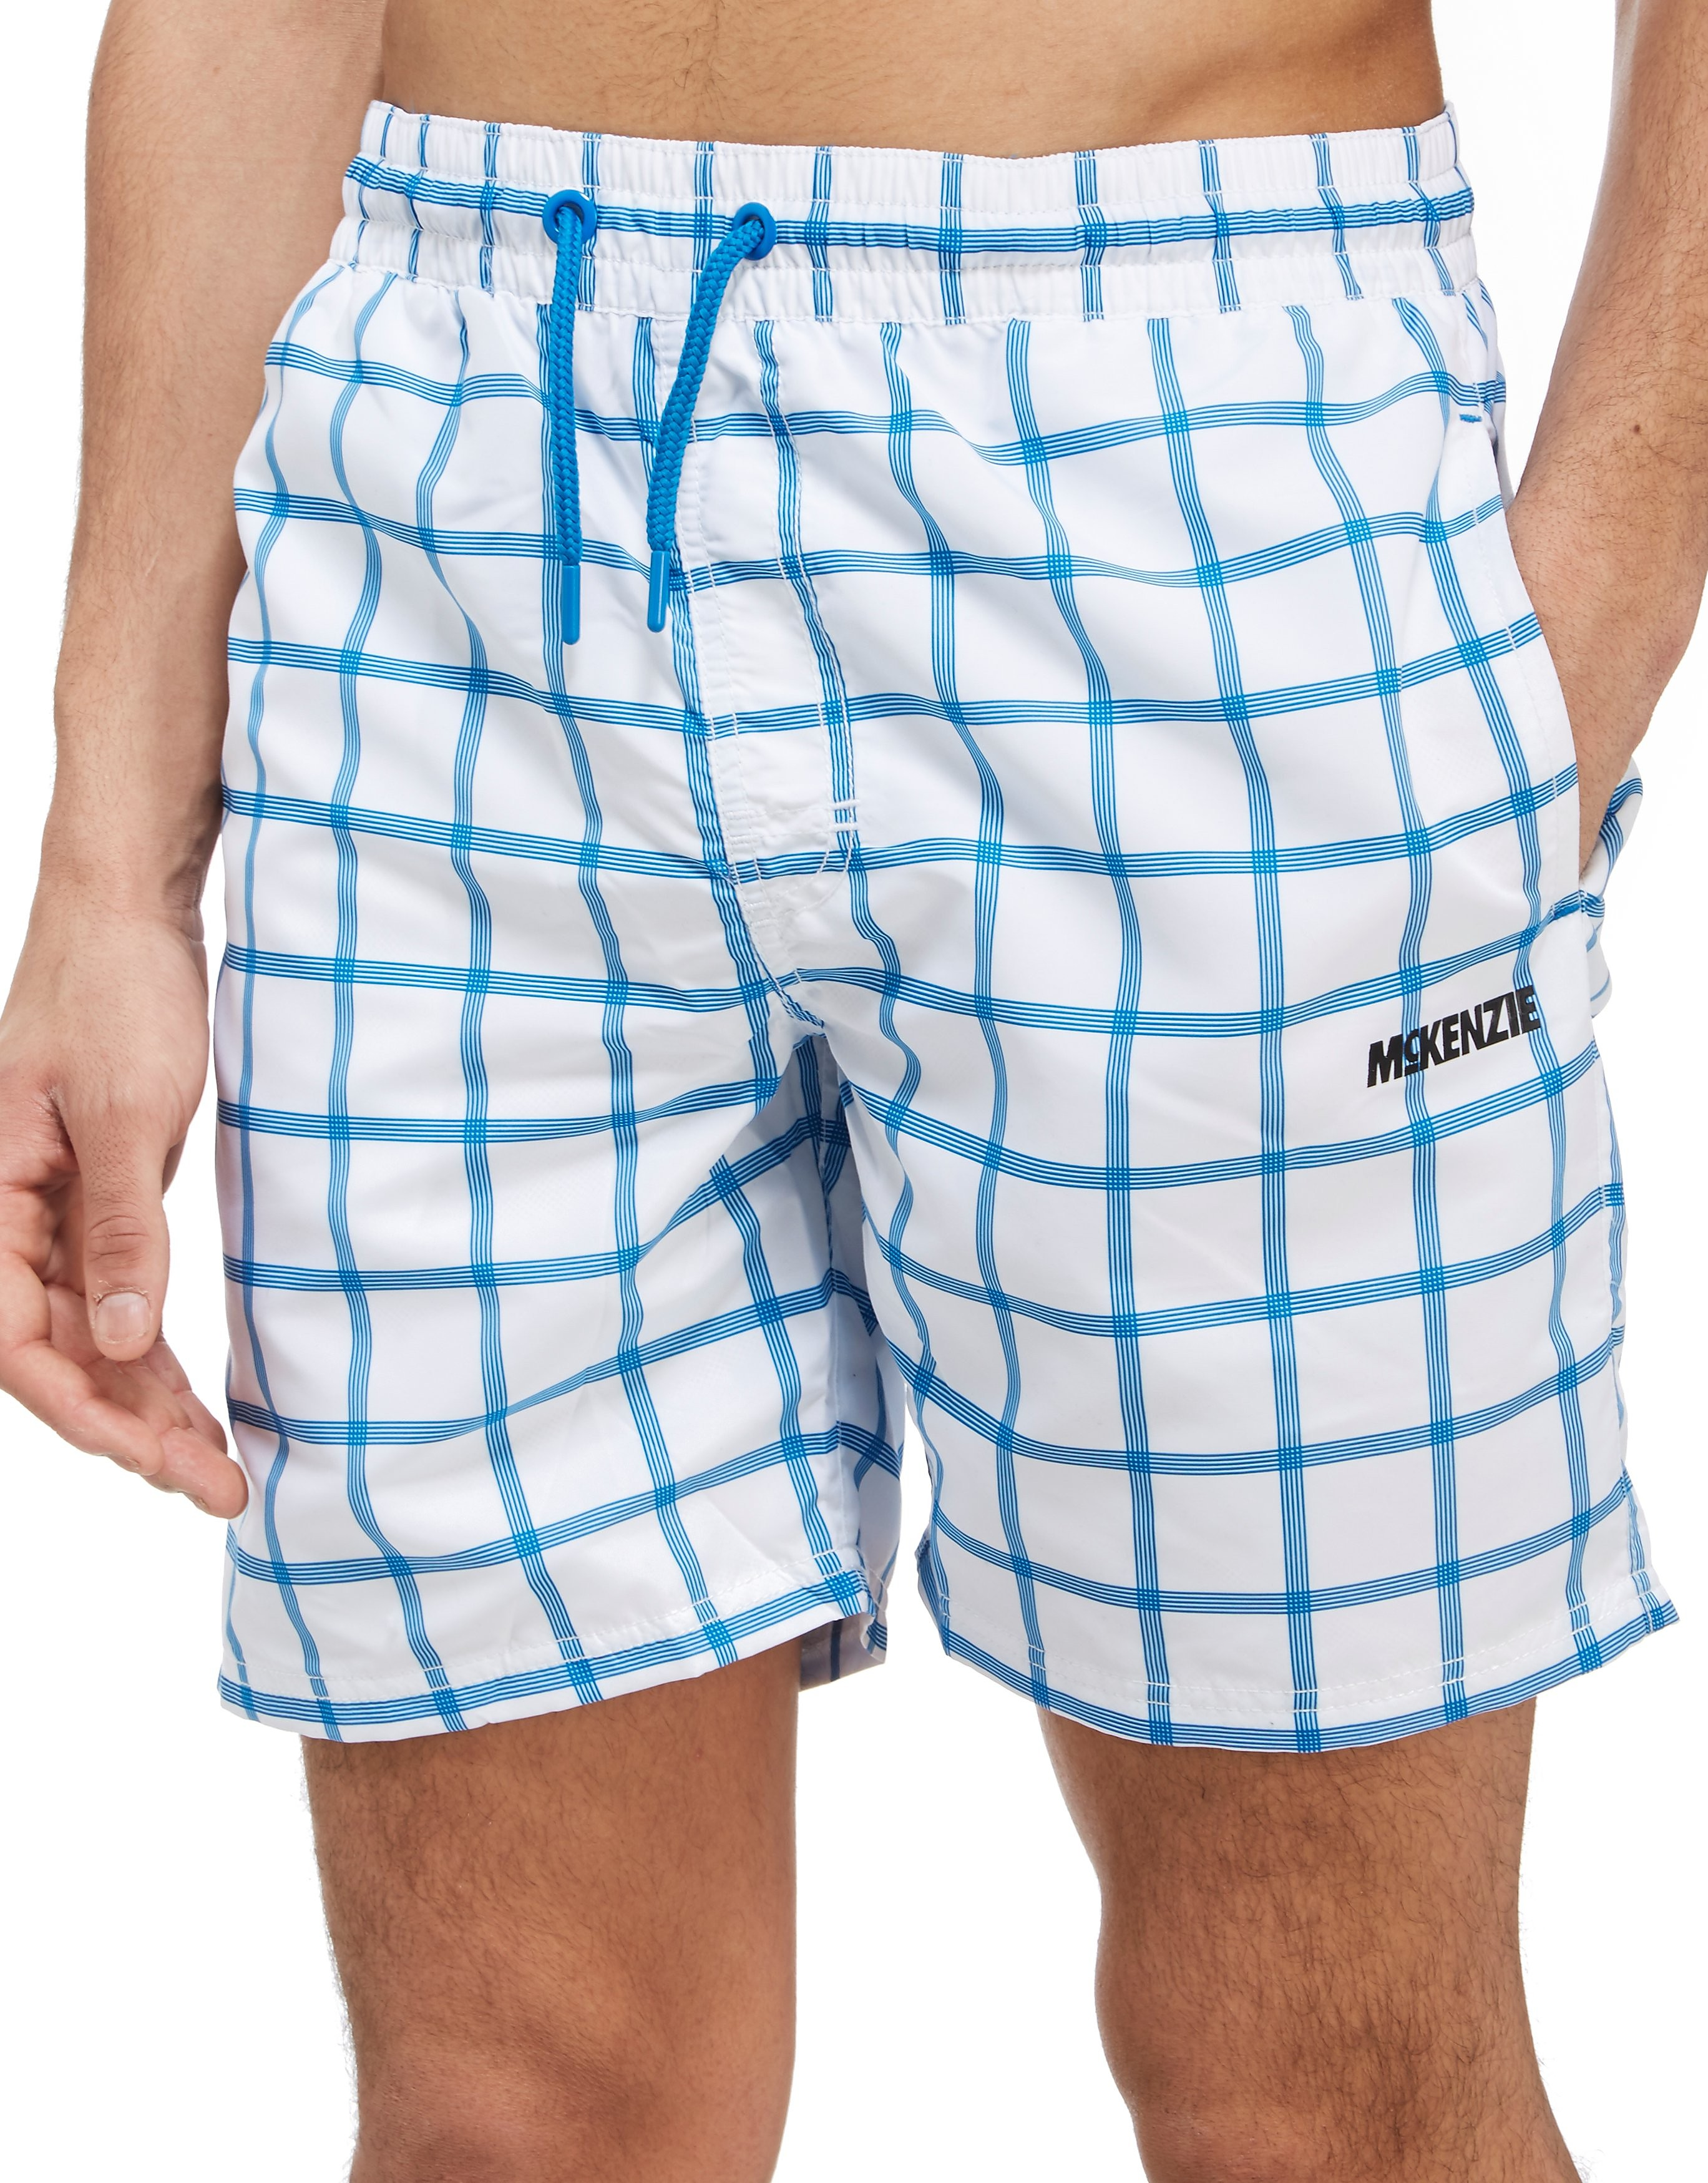 McKenzie Birch Swim Shorts